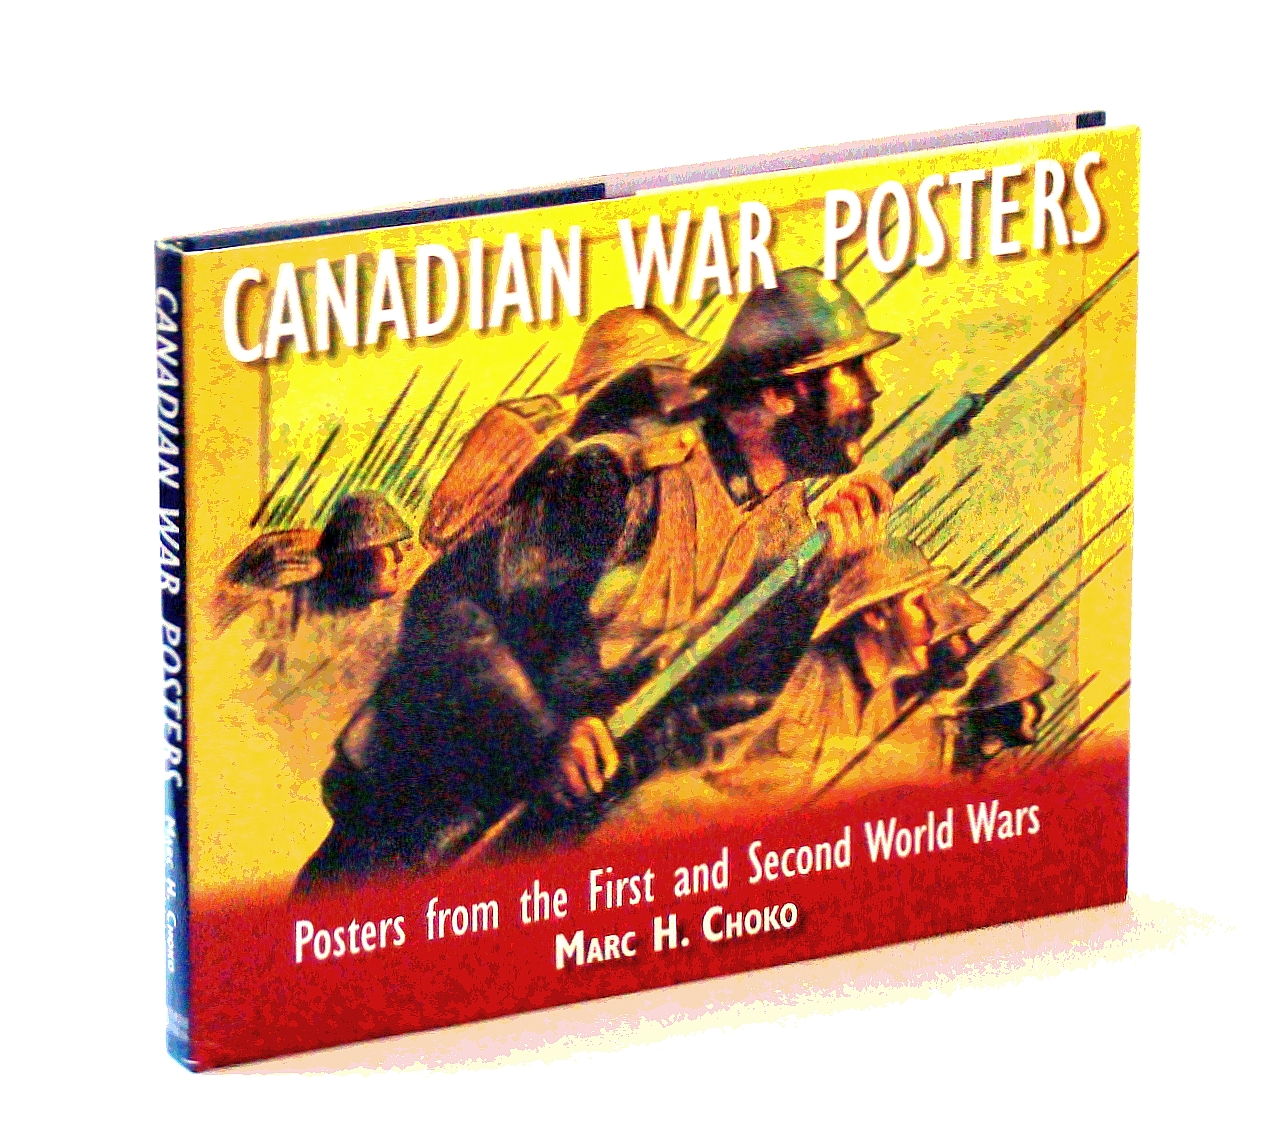 Canadian War Posters, Posters from the First and Second World Wars